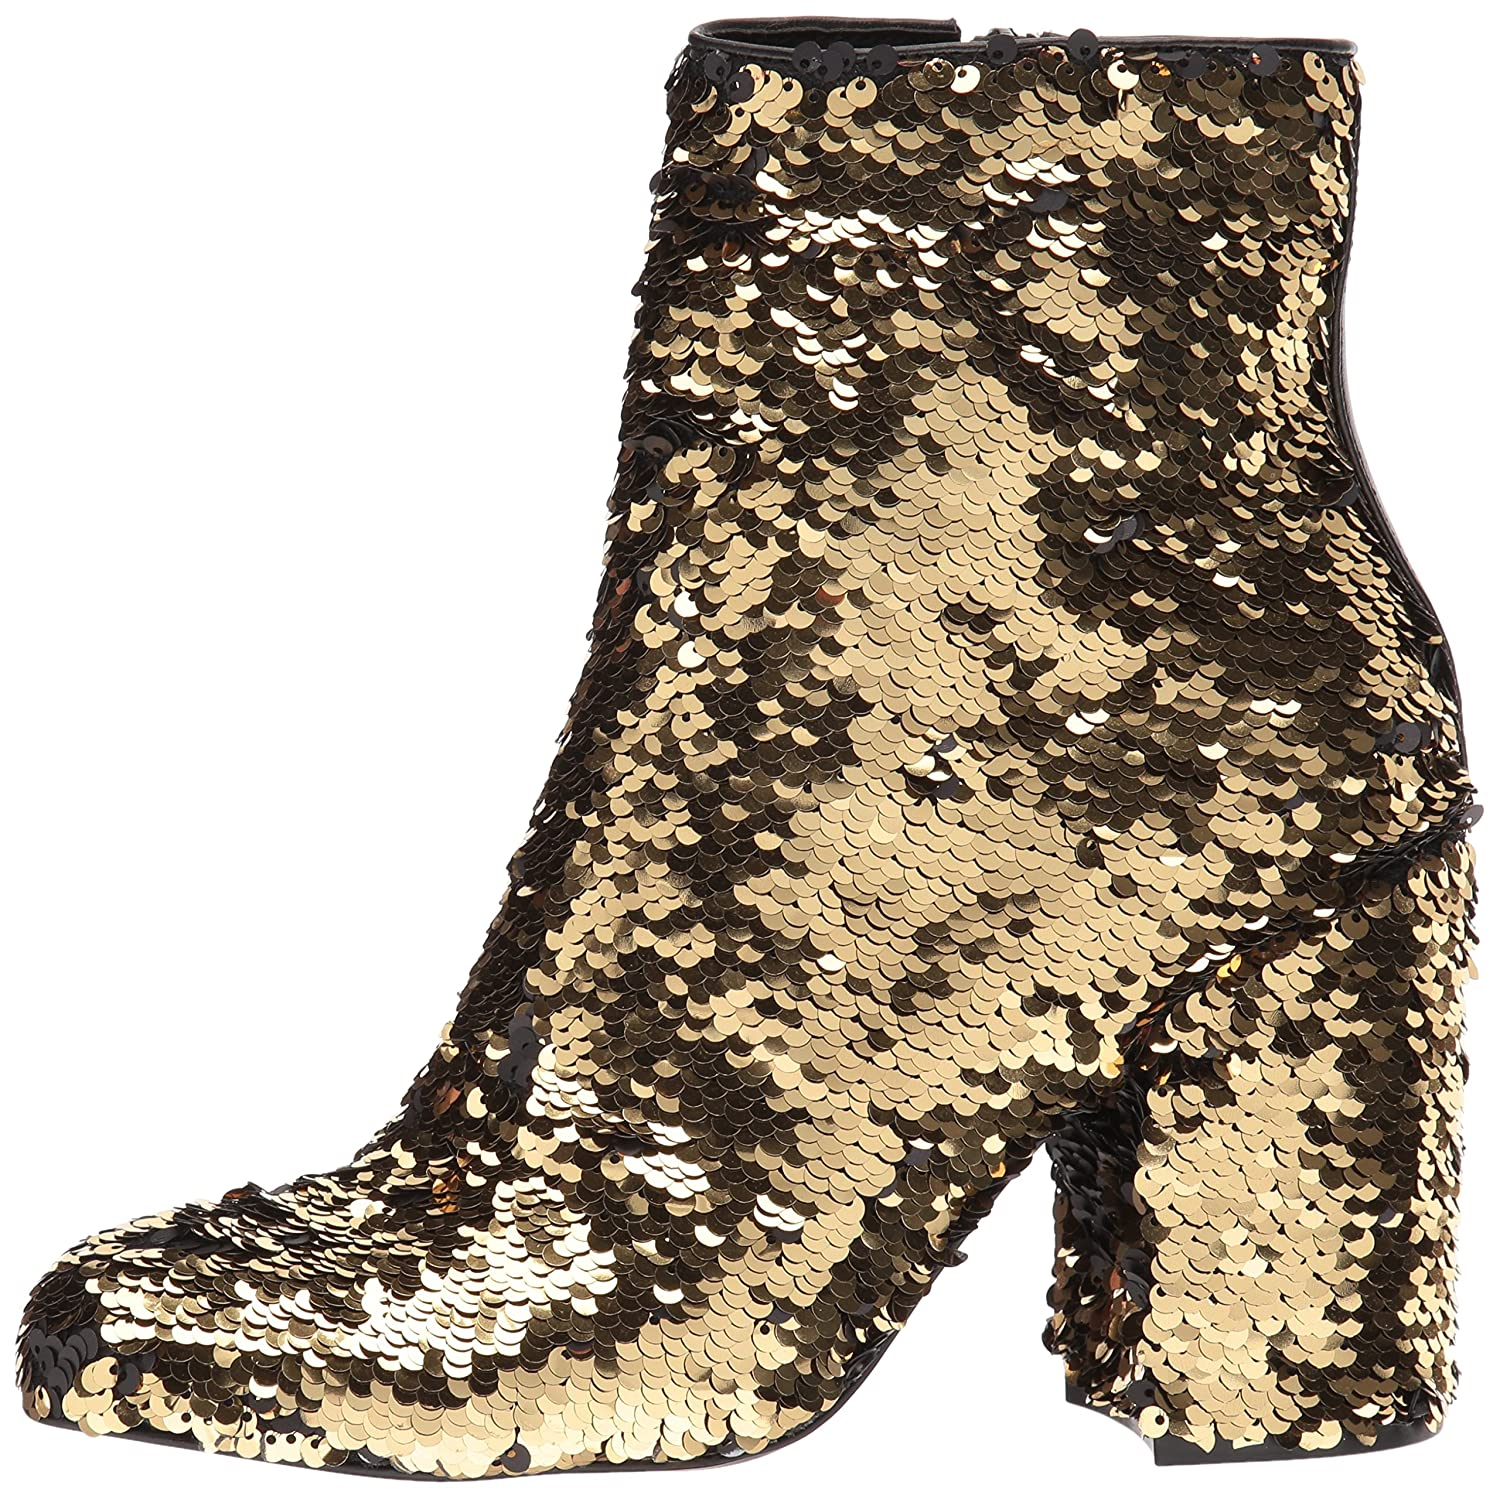 Steve Madden B075NQ5FCL Women's Georgia-s Ankle Boot B075NQ5FCL Madden 6 B(M) US|Gold Sequin f24bd8